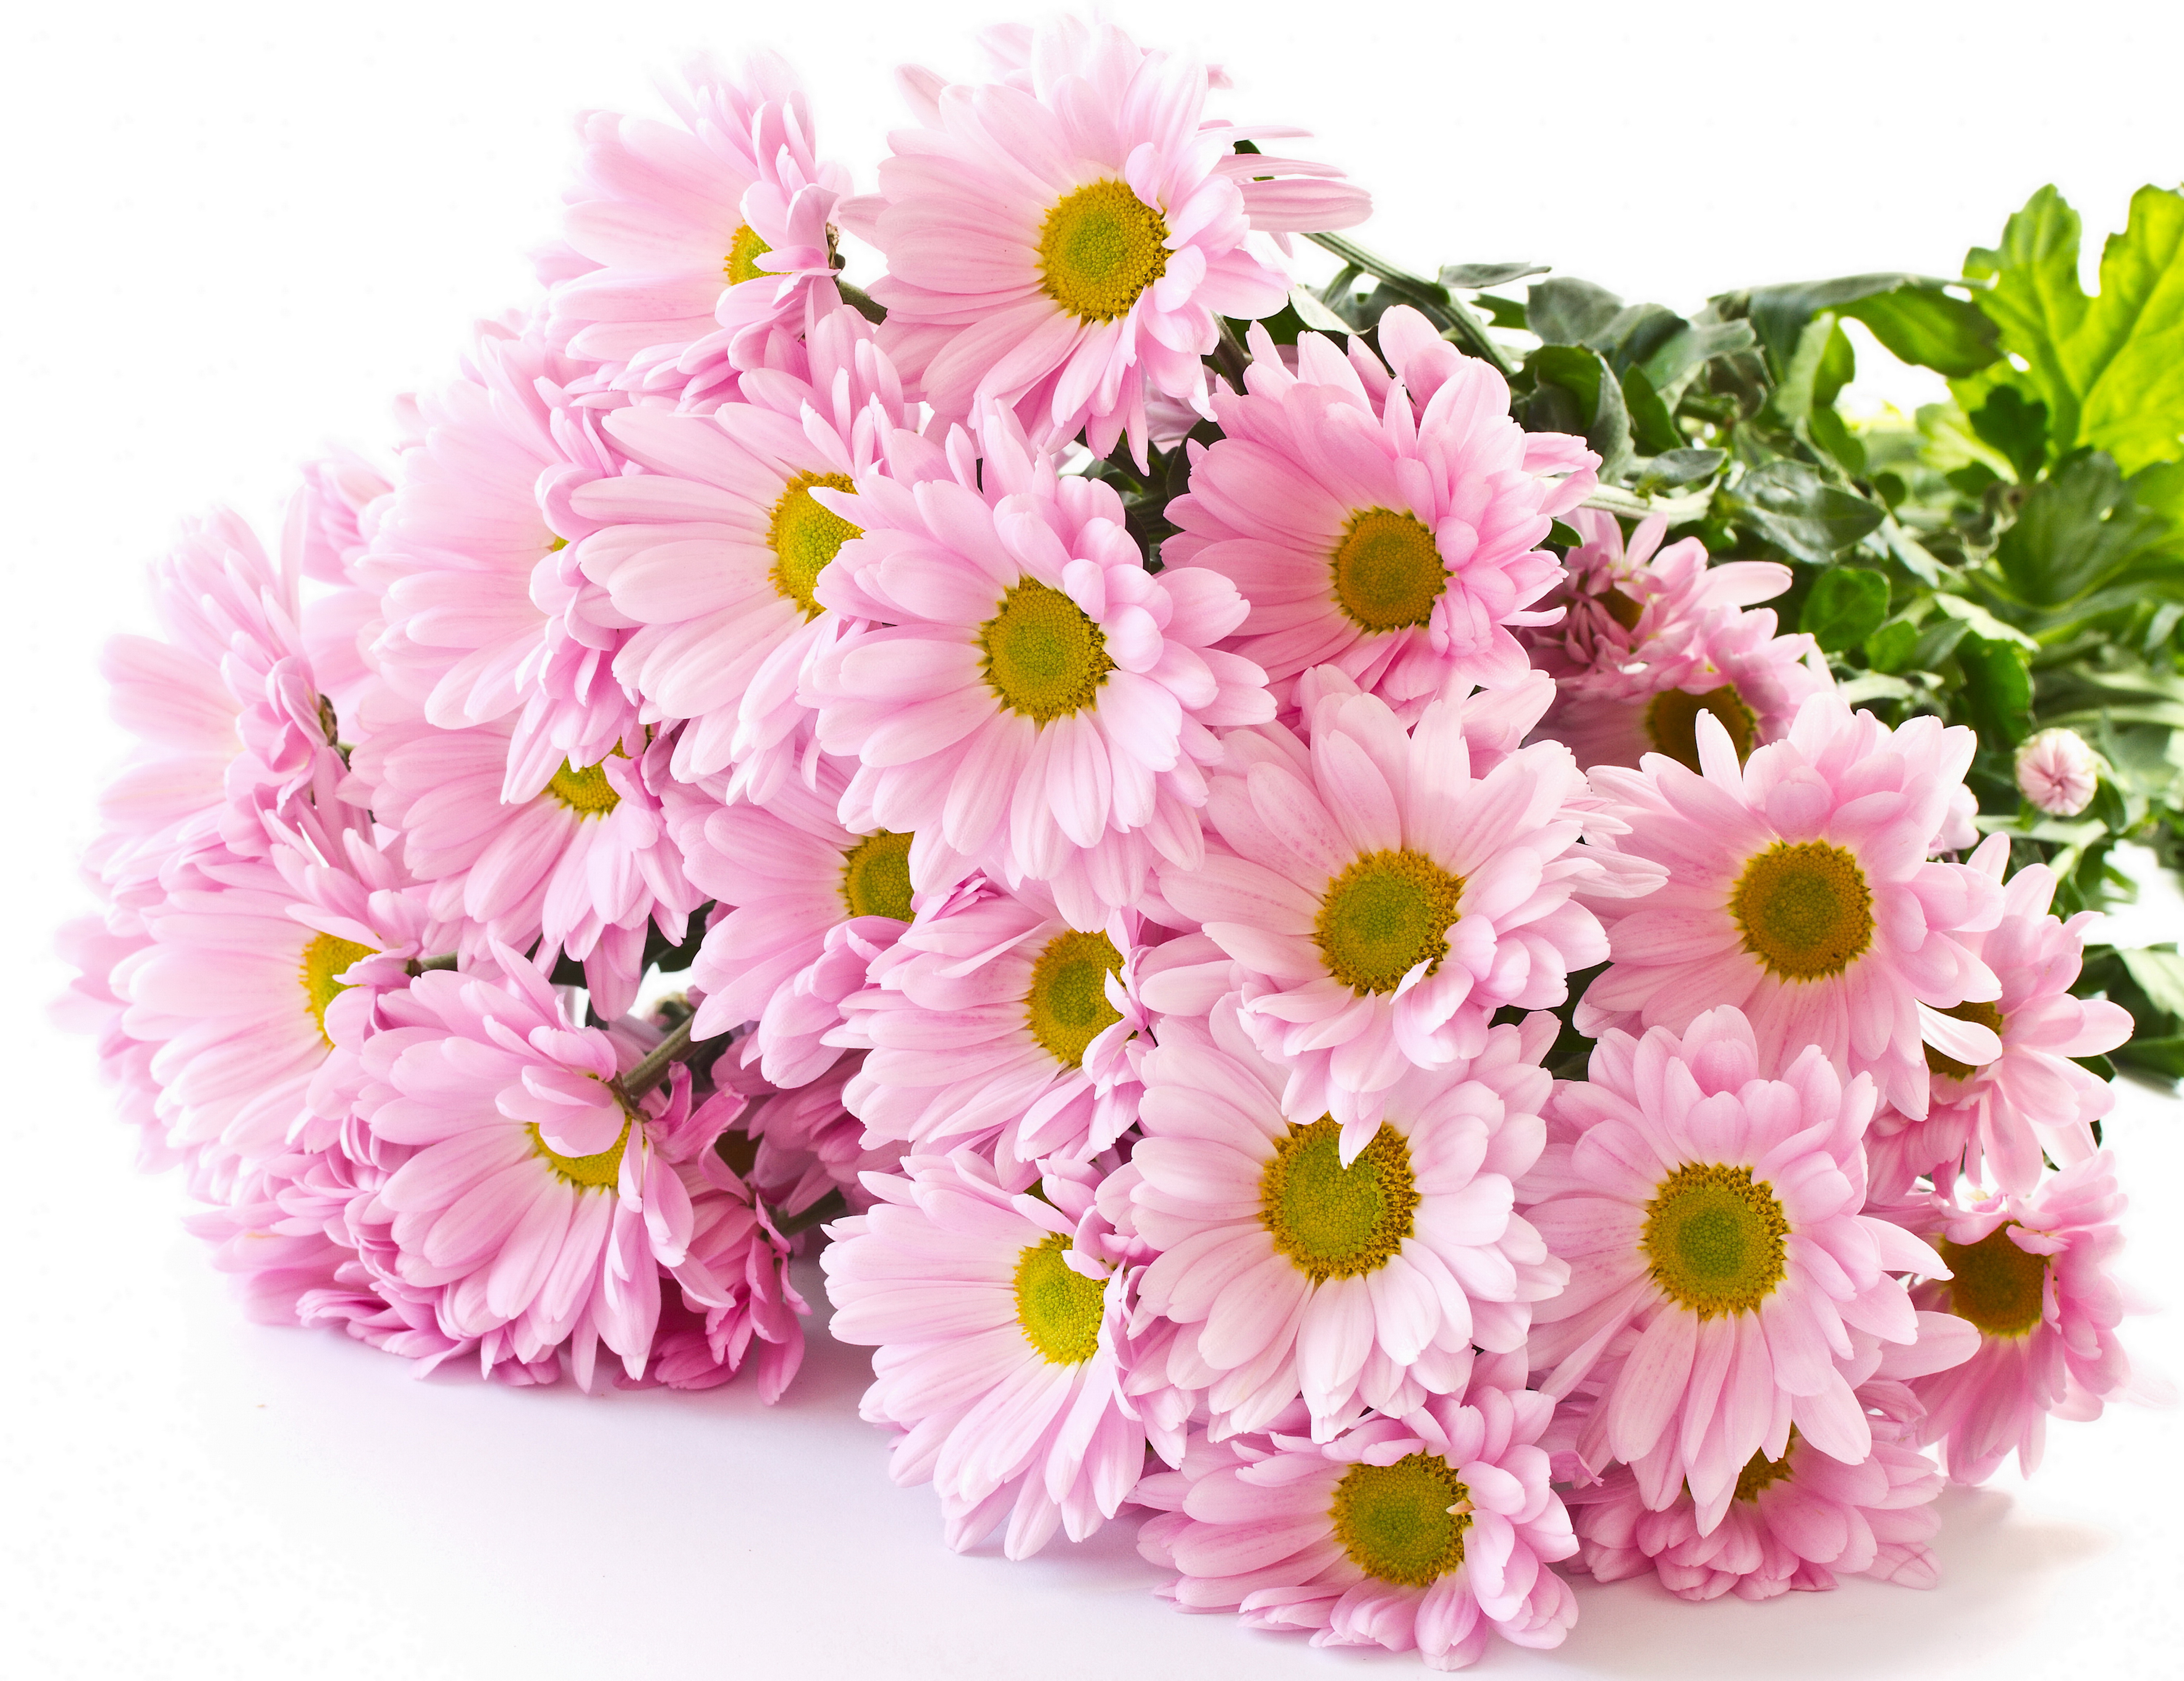 Wallpaper pink color flowers camomiles 6060x4665 mightylinksfo